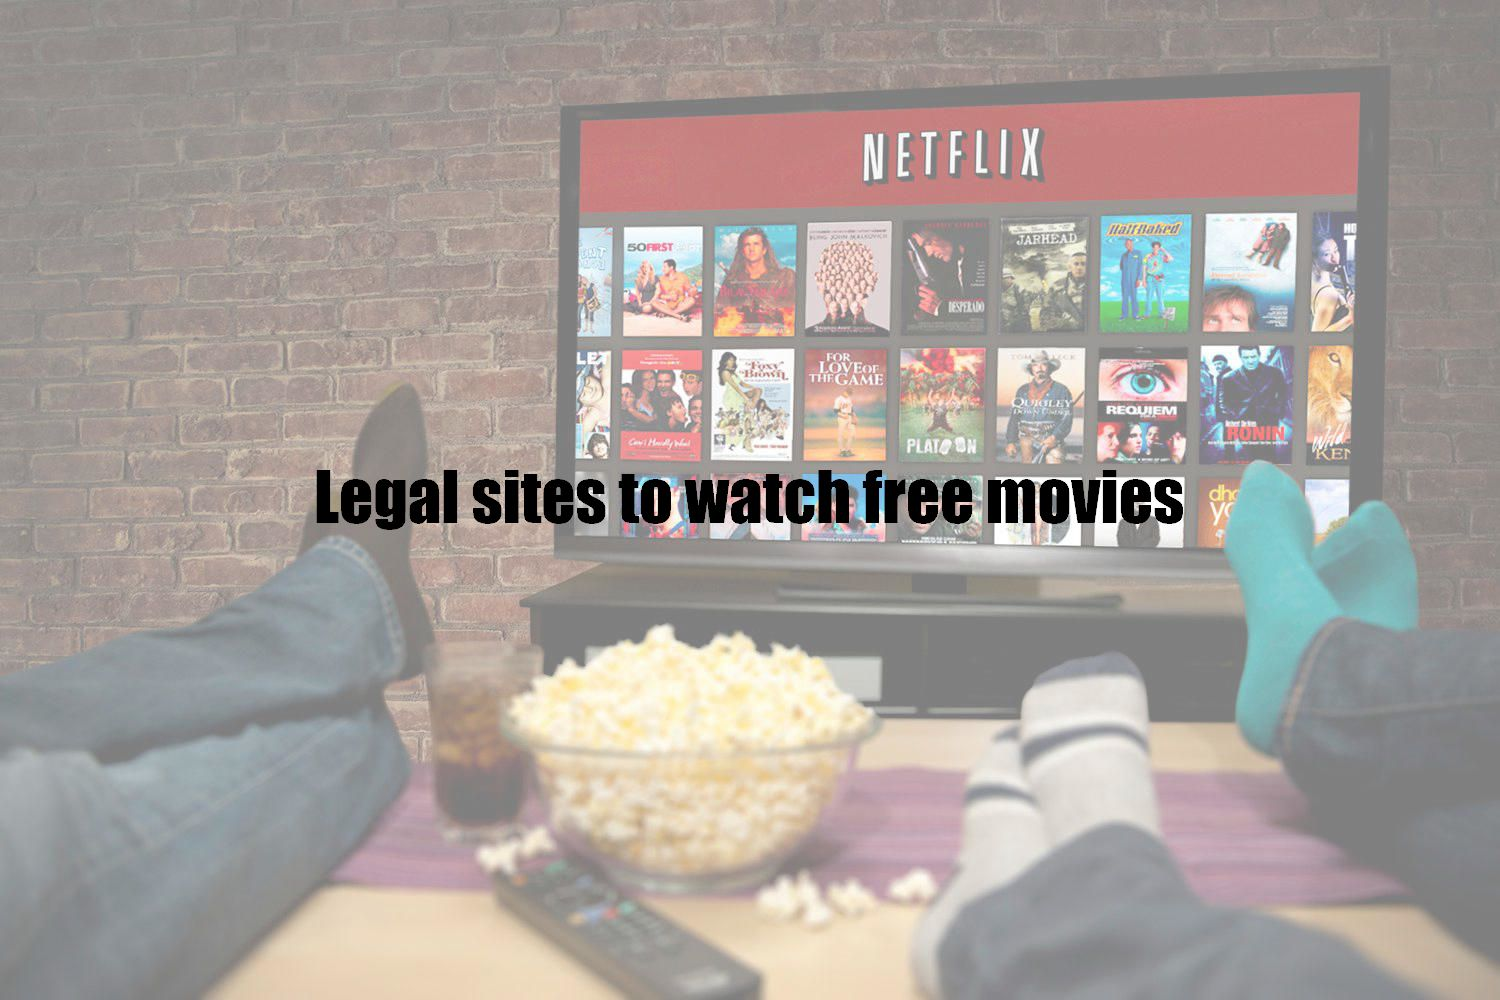 Legal sites to watch free movies